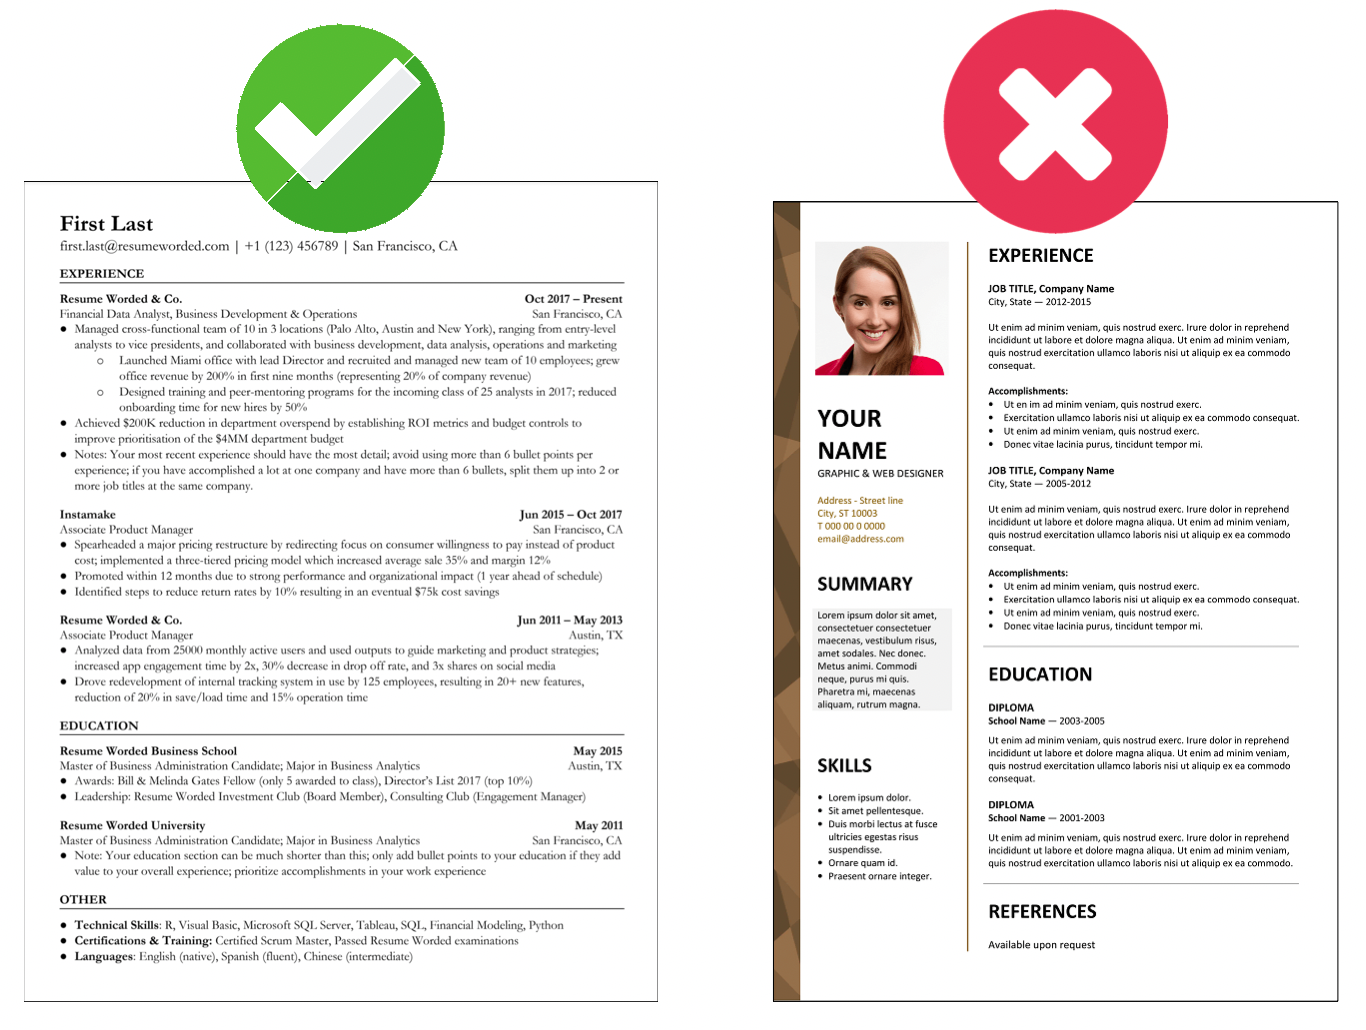 Use a standard one-column template to ensure your resume gets read correctly by ATS